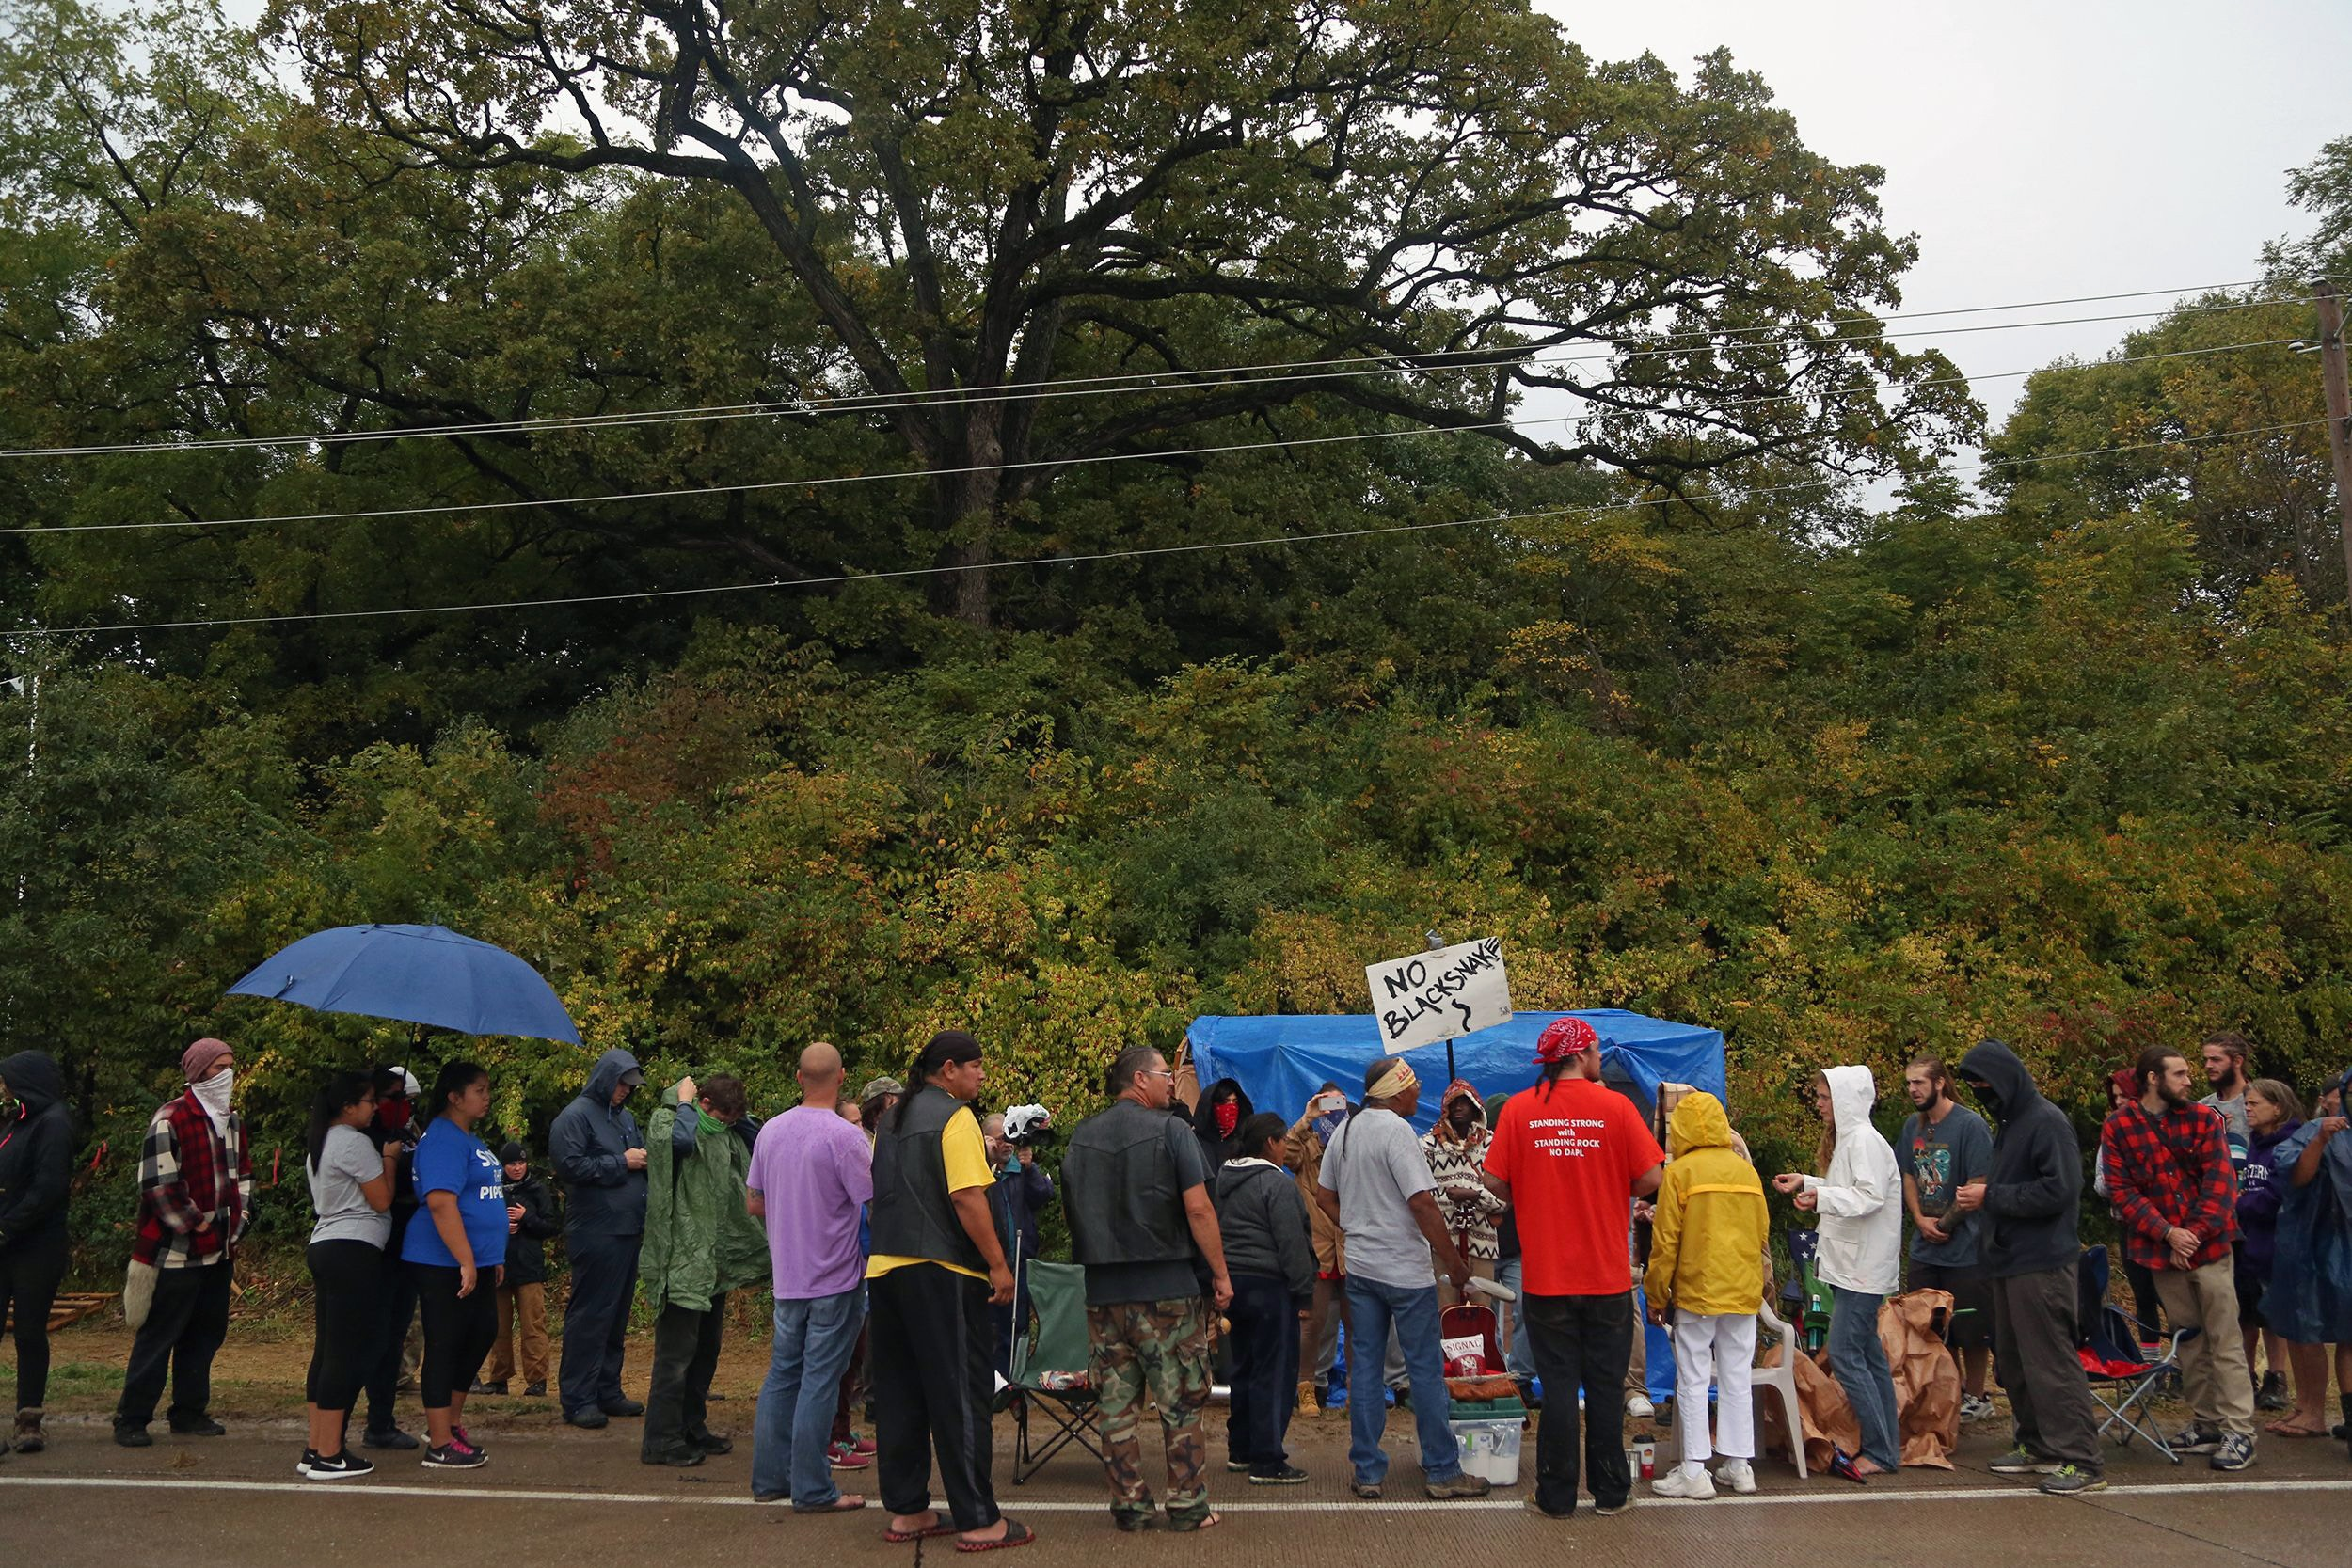 Oct. 6, 2016; Keokuk, IA, USA; Protesters gather at the Mississippi Stand Camp, at the entrance to the work area where a route for the Dakota Access Pipeline was being bored under the Mississippi River. A group of people from the Standing Rock protests joined the campers today. Mandatory Credit: Kelsey Kremer/The Register via USA TODAY NETWORK